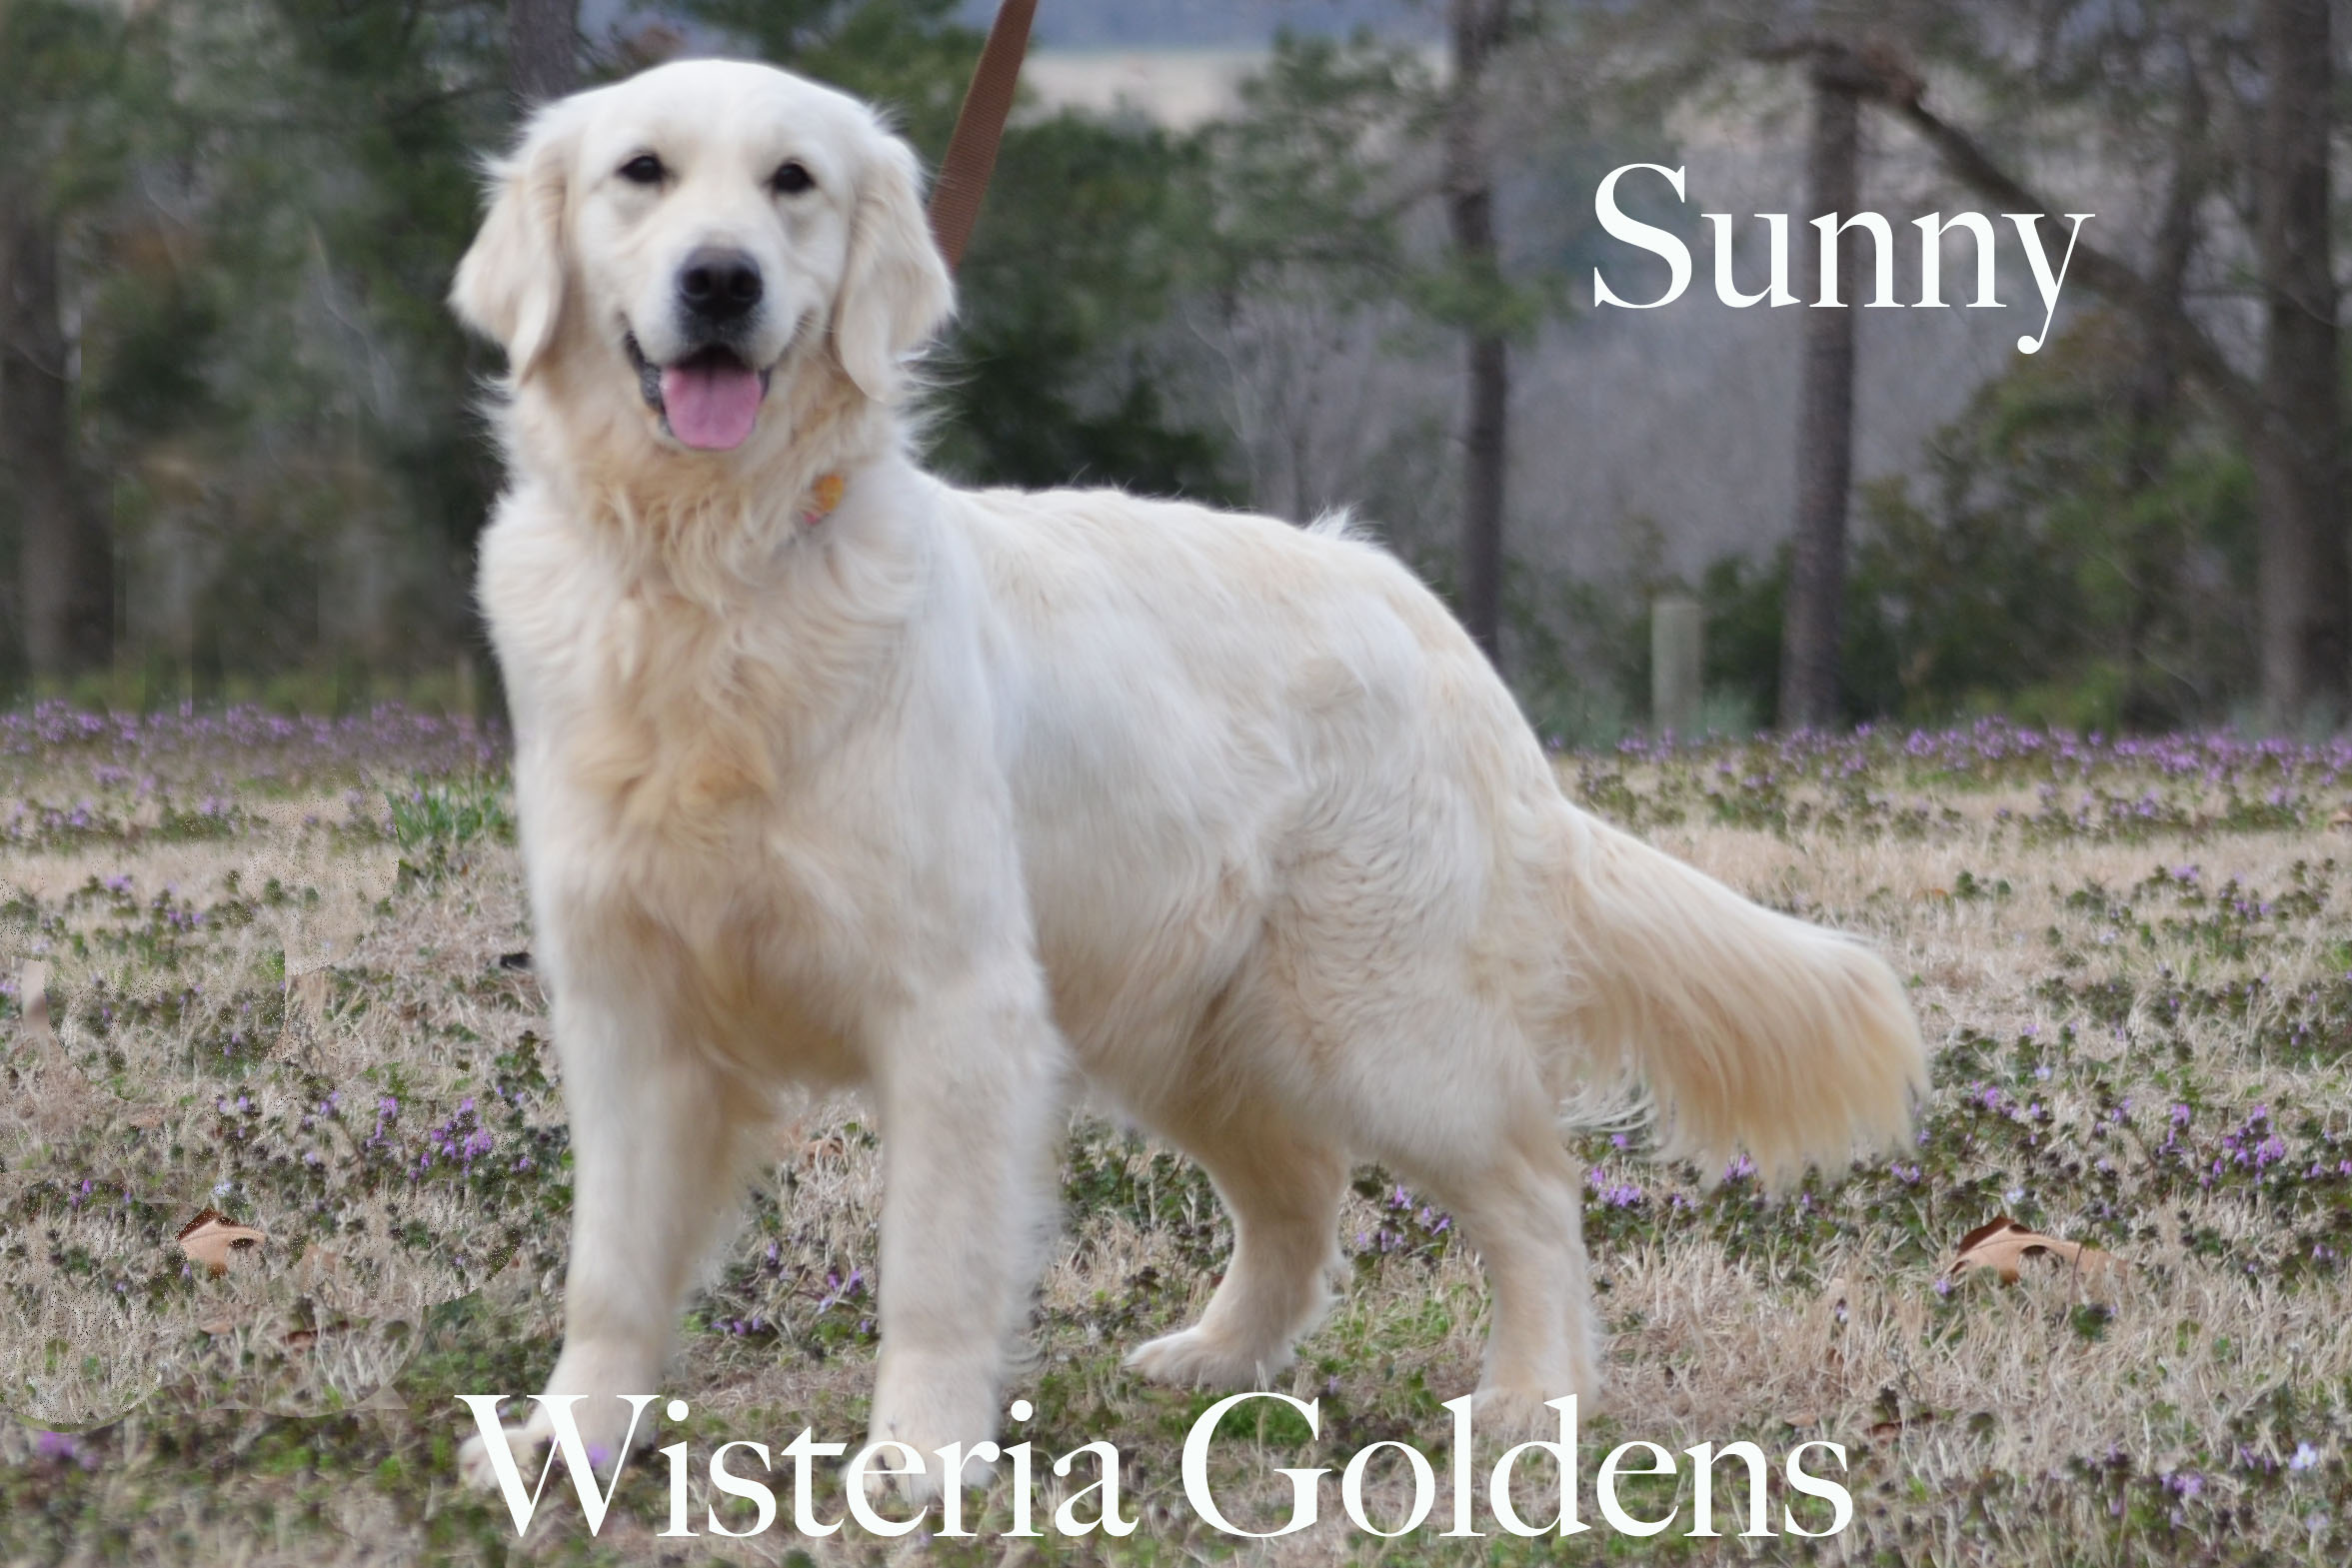 Sunny_0004-full-english-creme-golden-retriever-wisteria-goldens